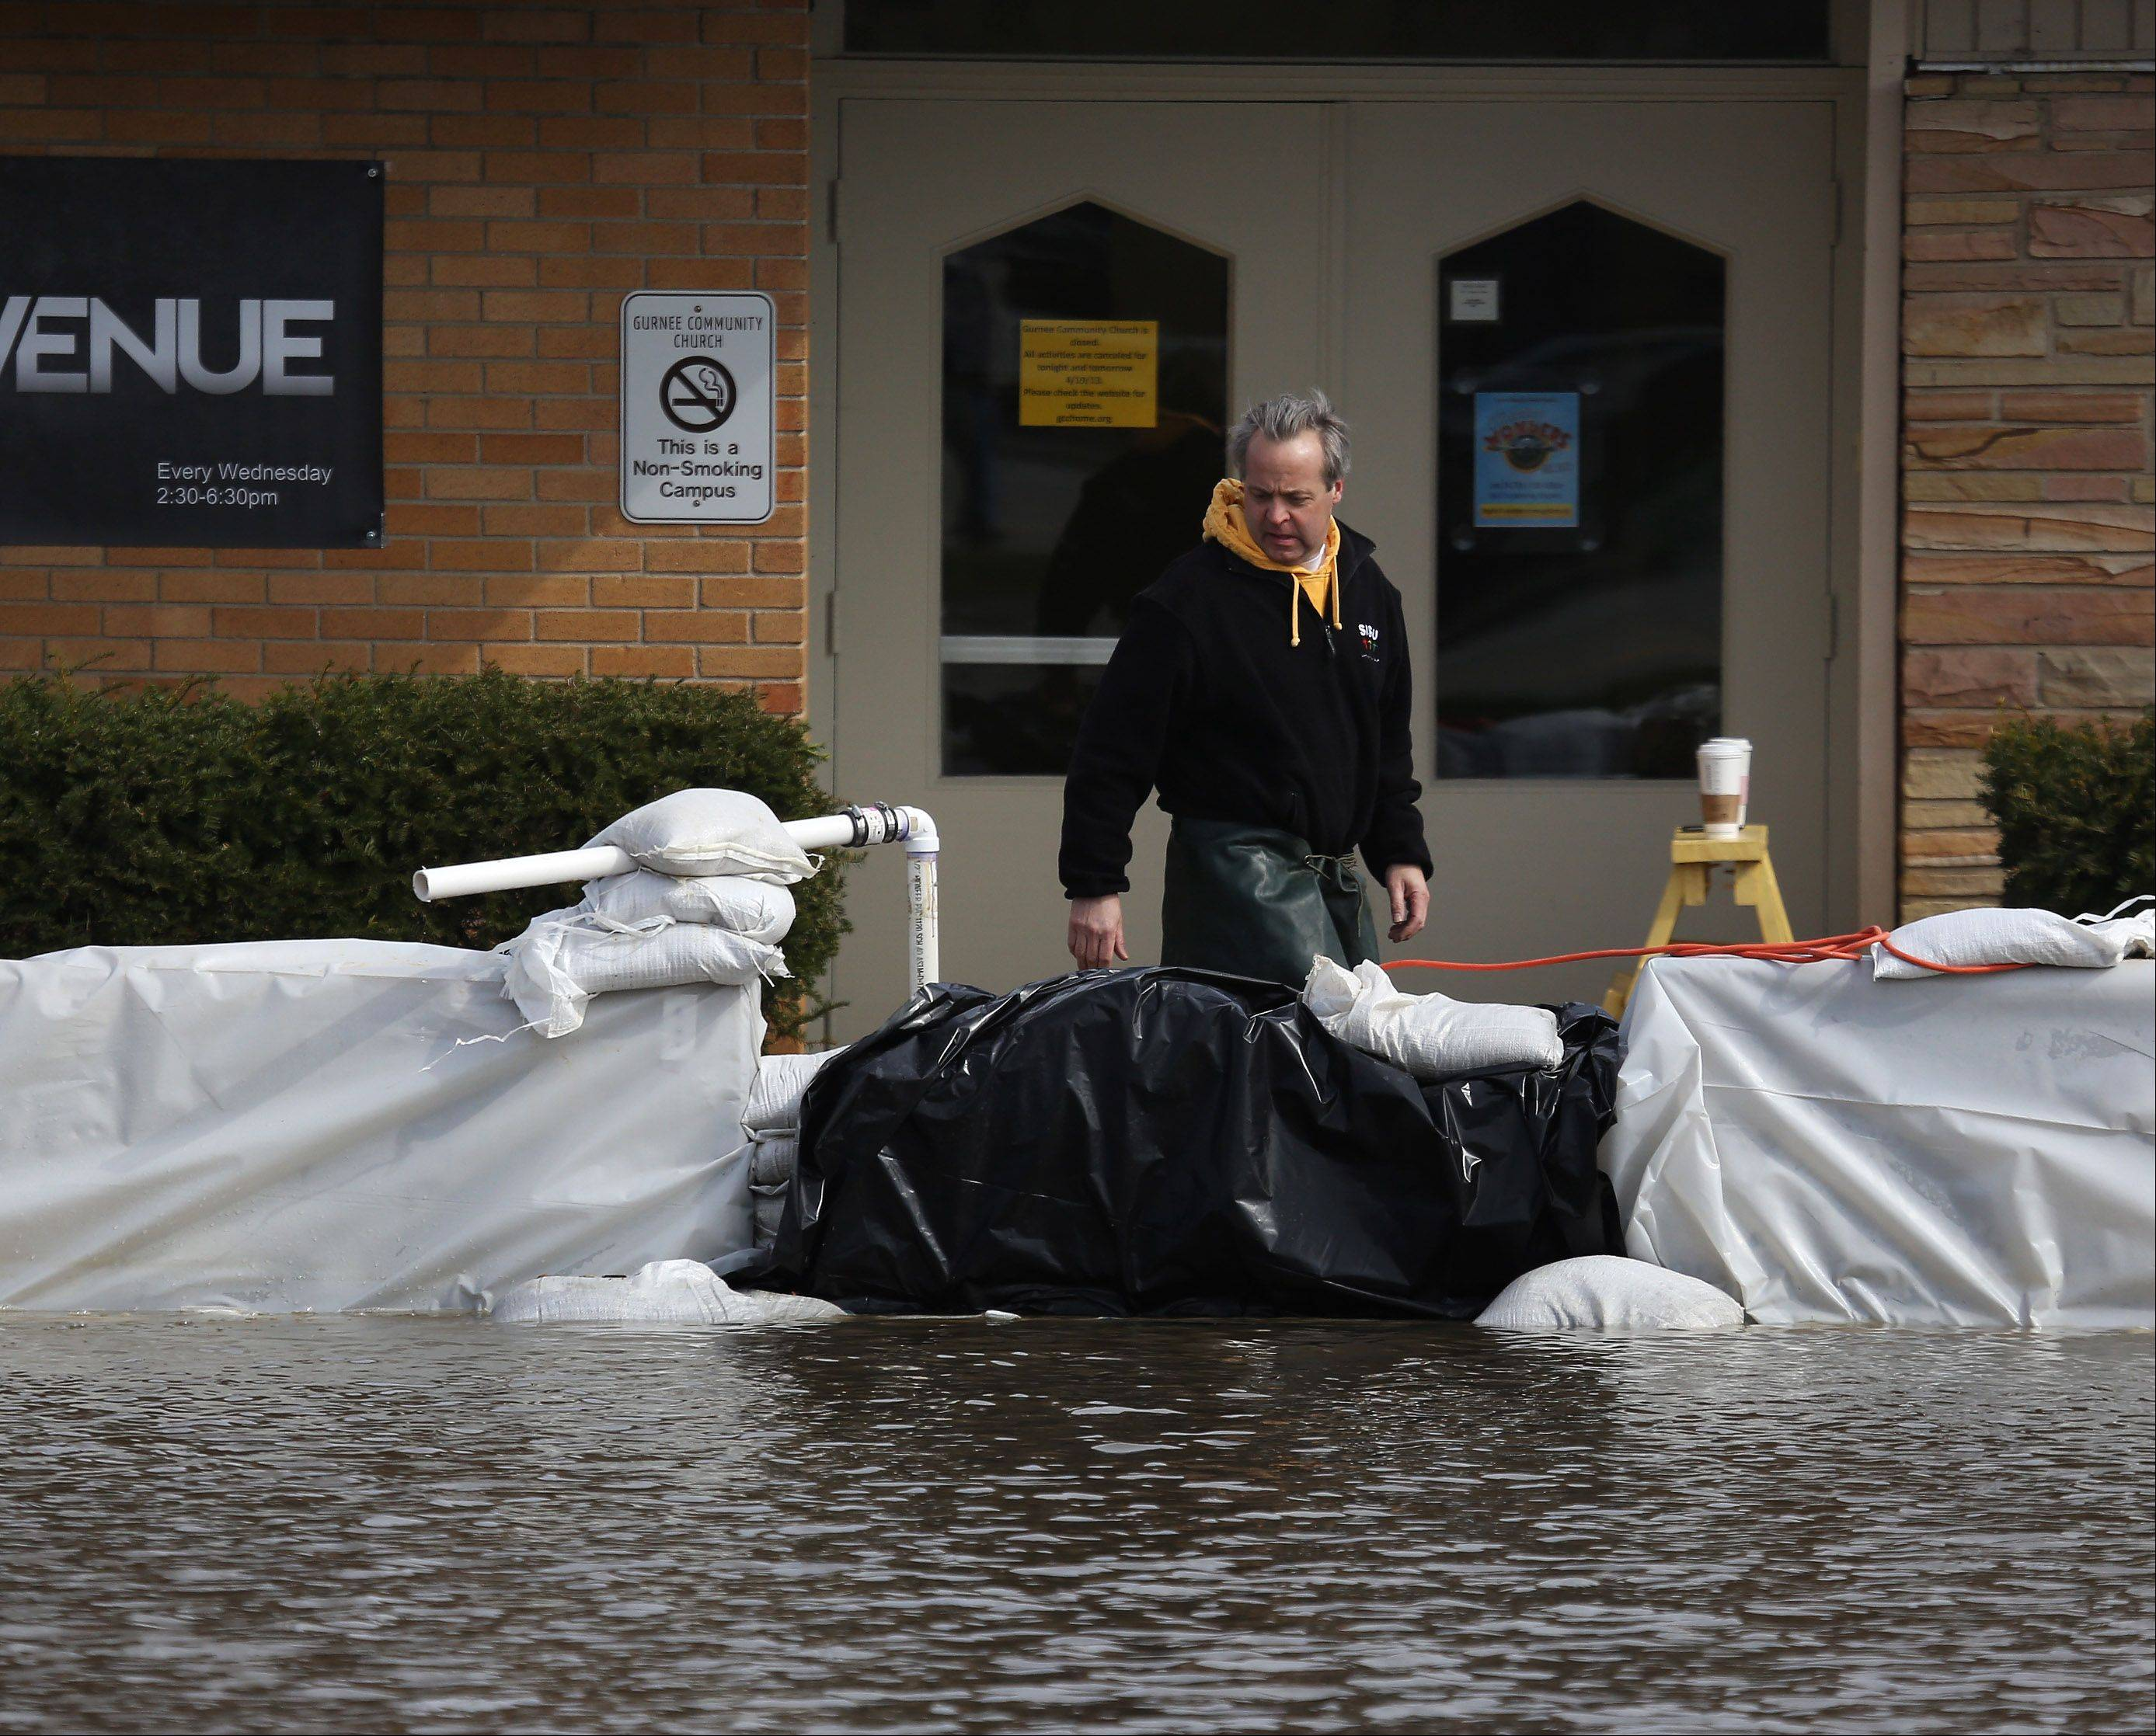 Images: Flooding in the Suburbs on Sunday